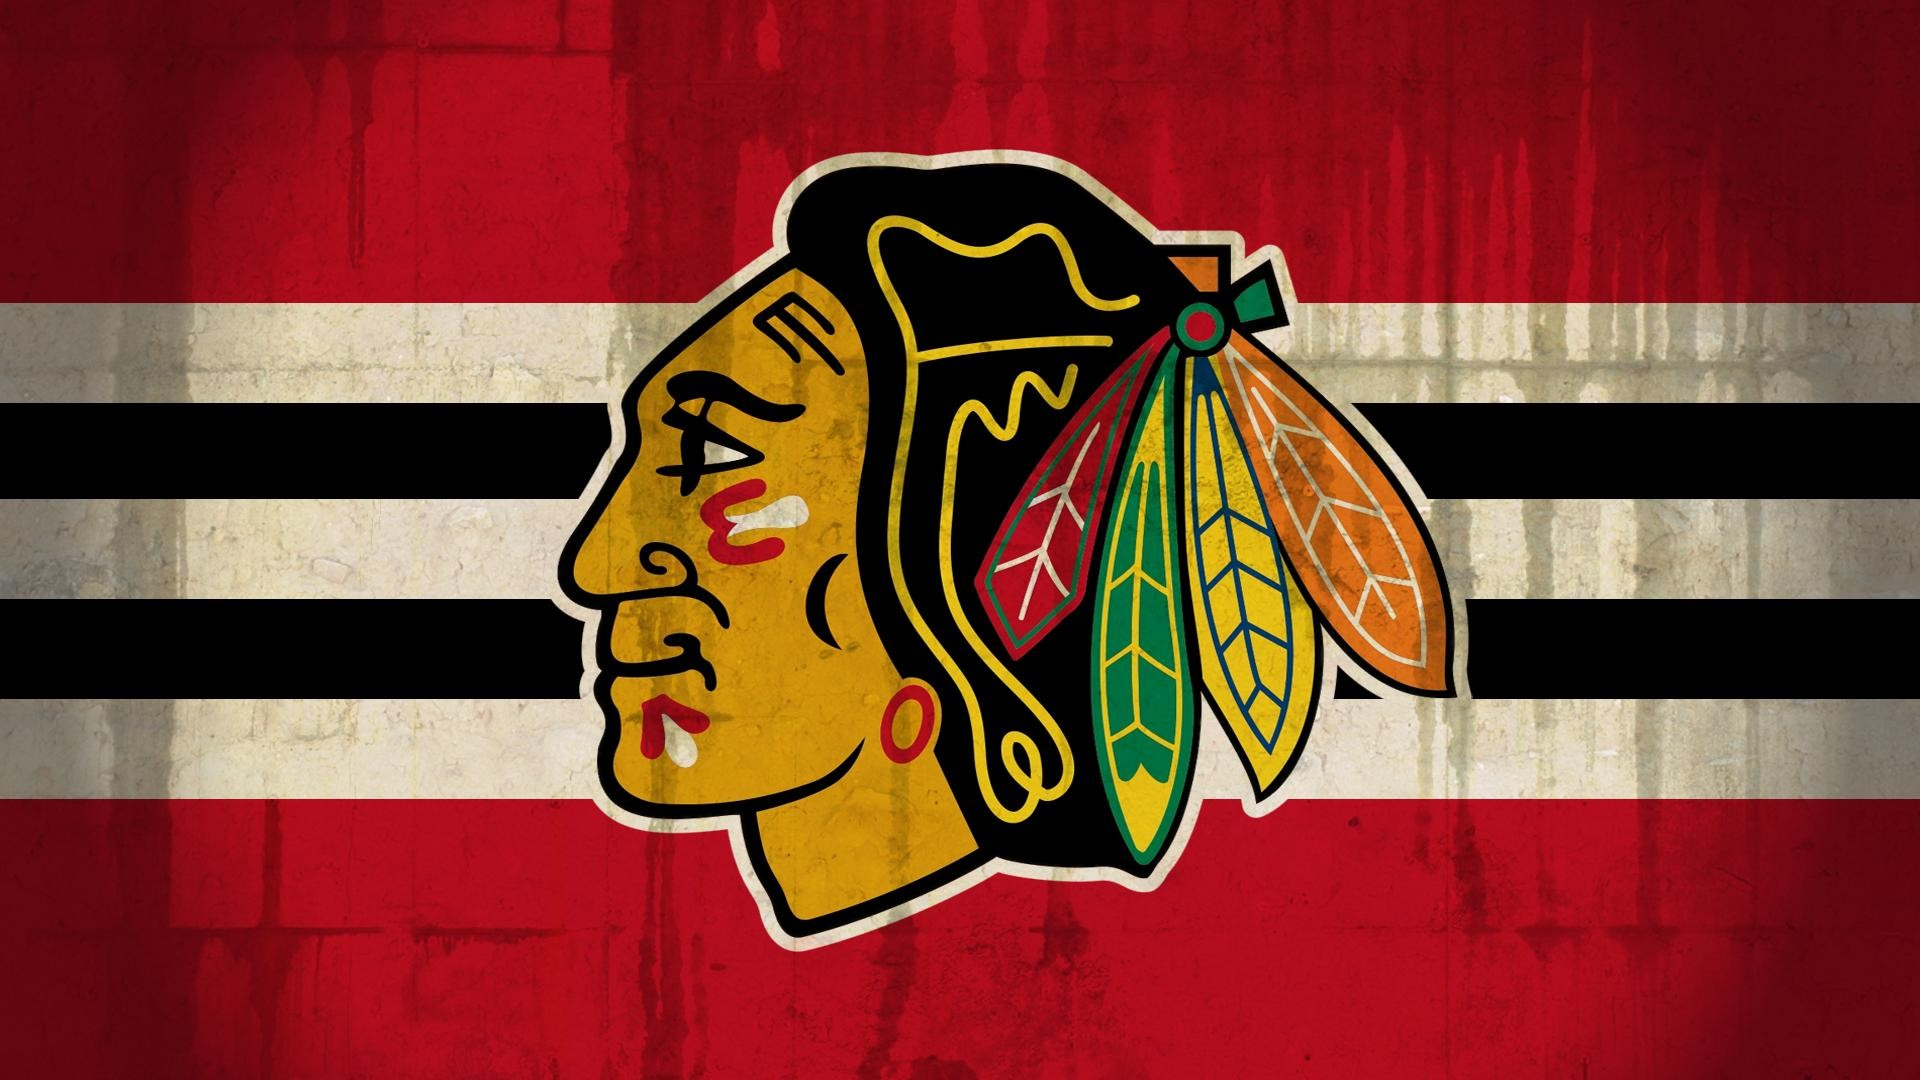 Chicago Blackhawks Wallpaper 1 Download Free Beautiful Backgrounds